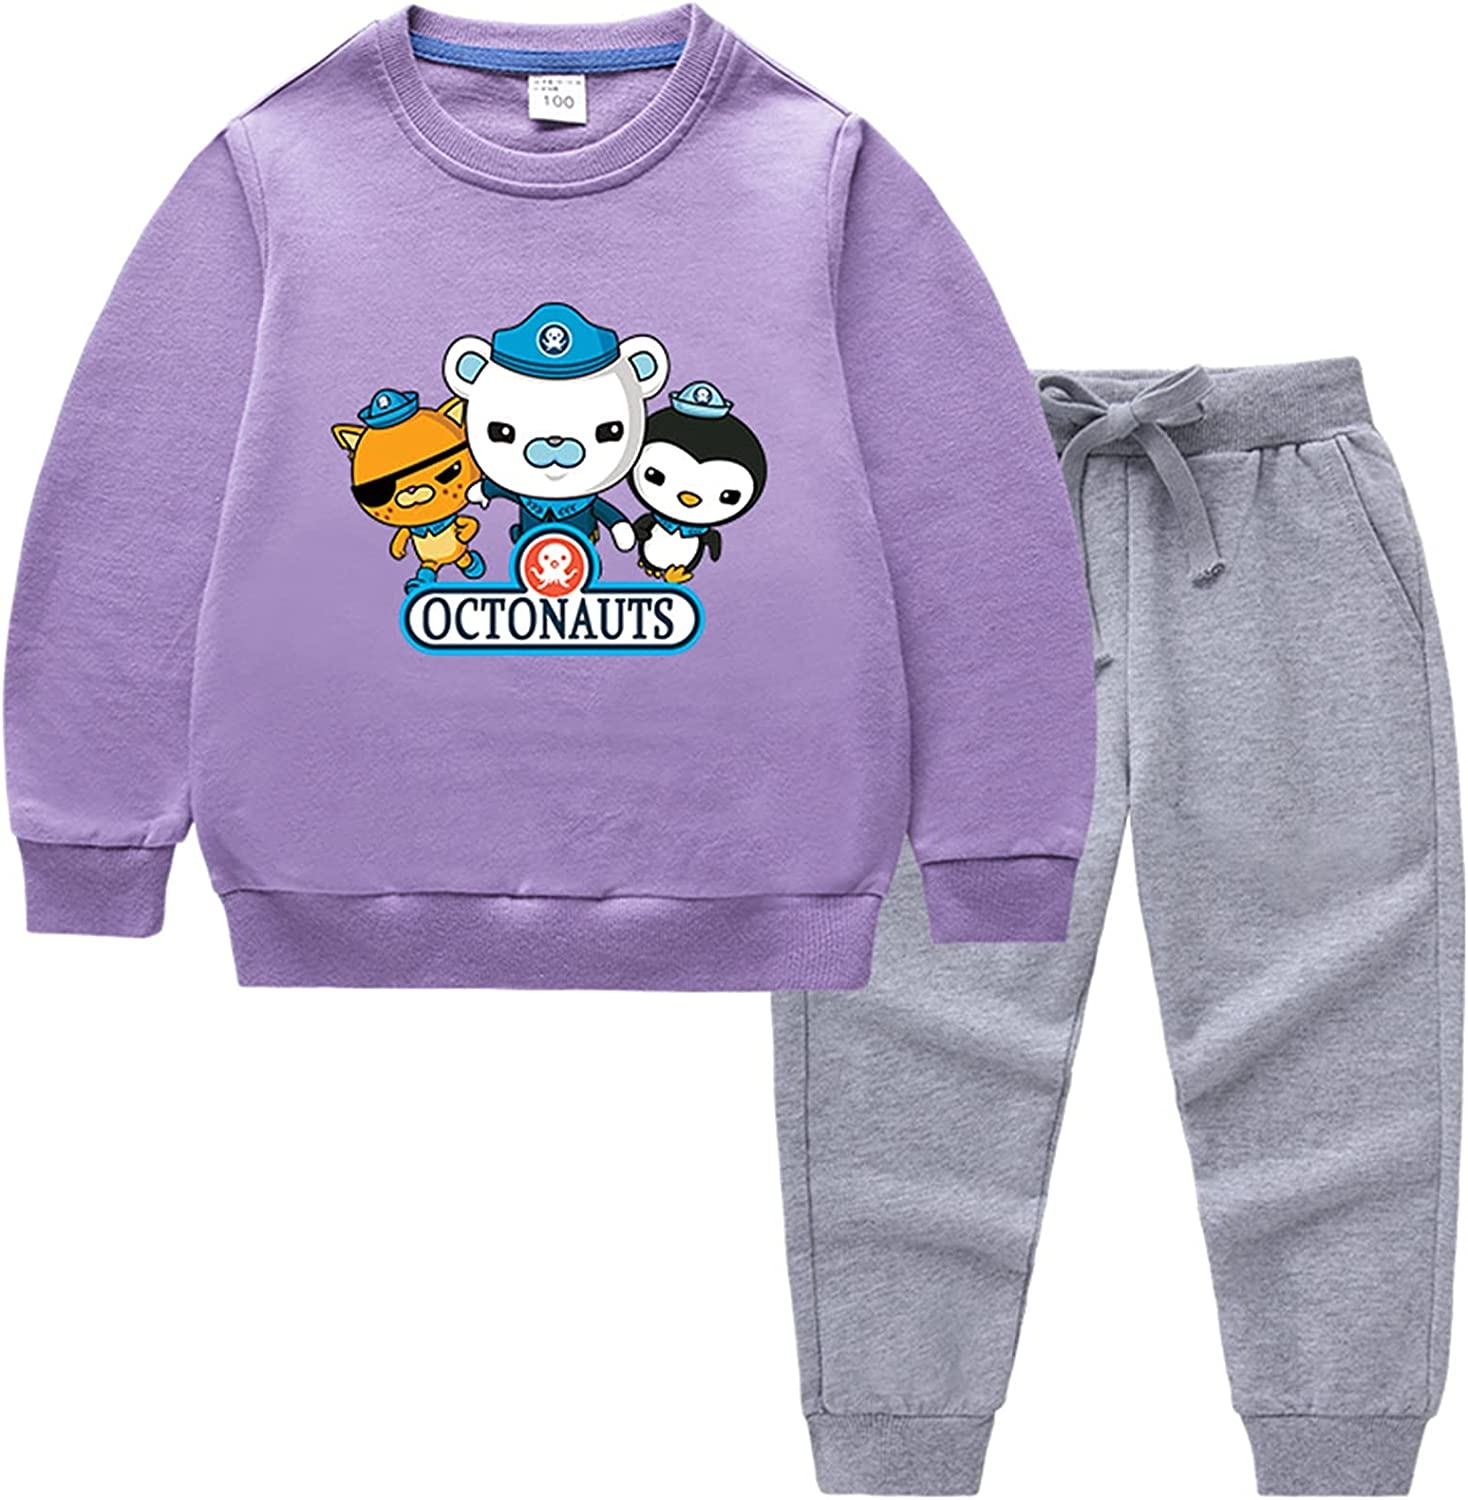 GD-Clothes Kids Crewneck The Sweater-Cartoon Very popular Max 51% OFF Octonauts Pullover